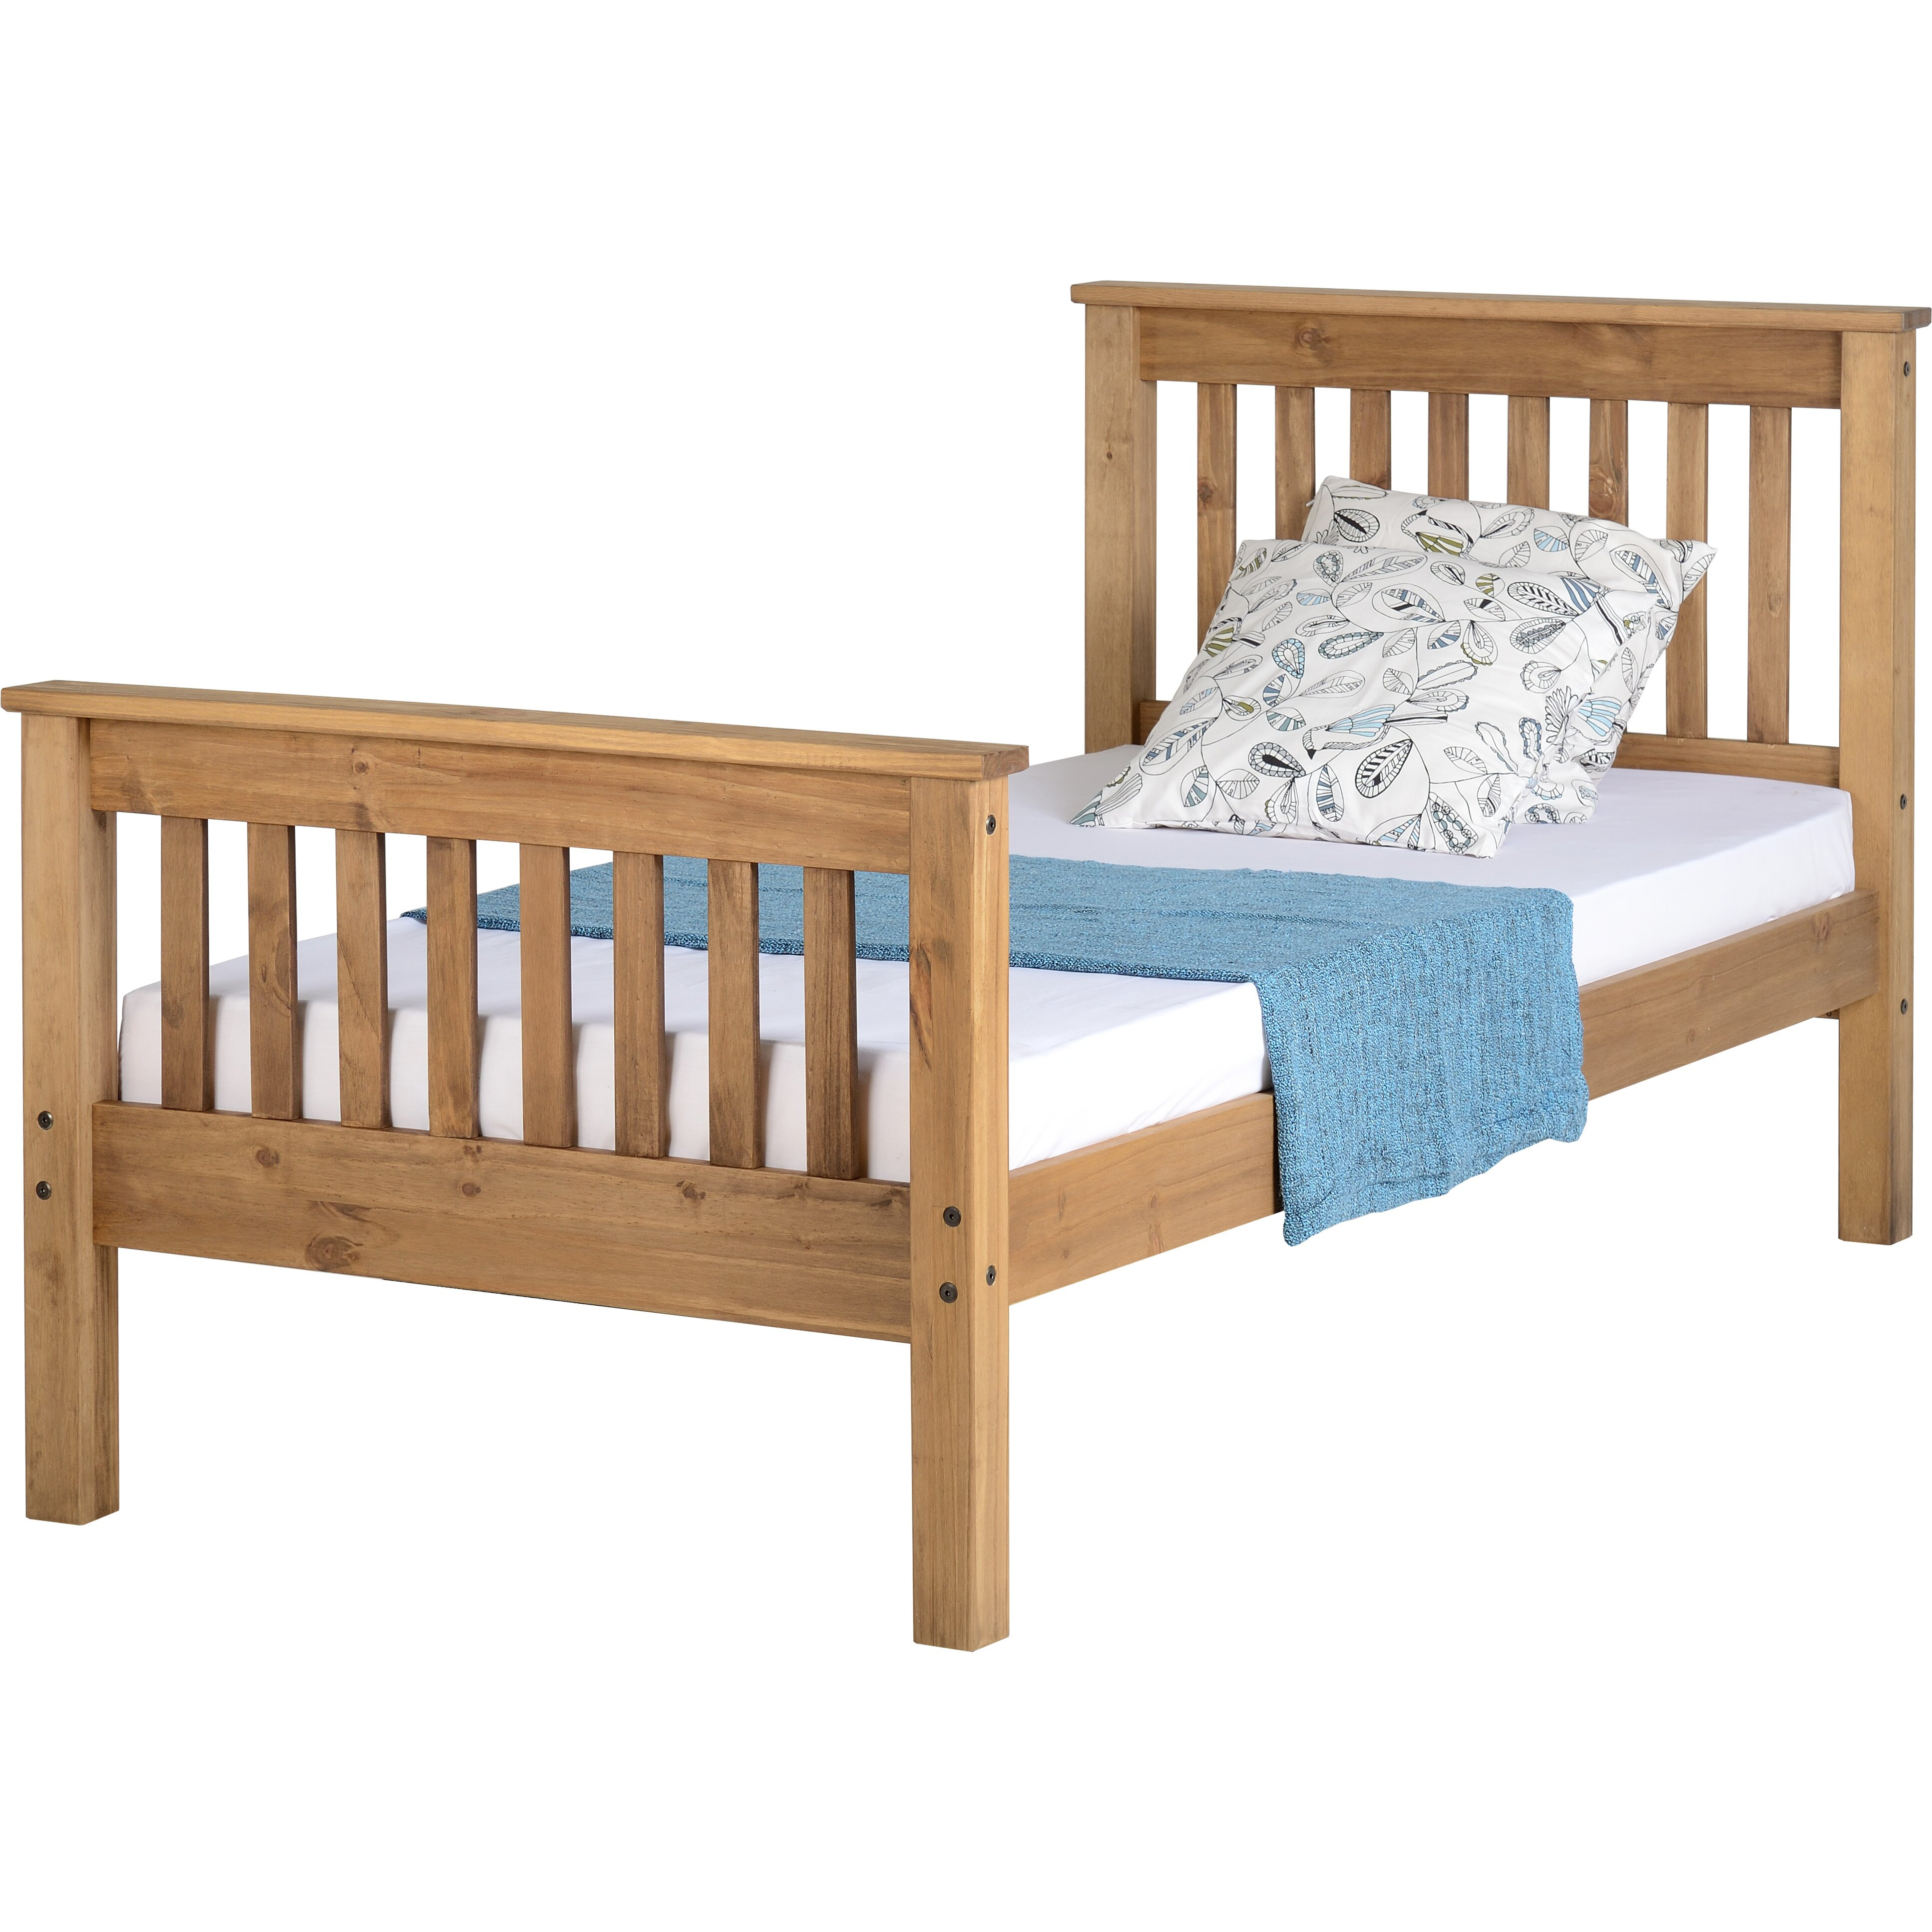 Home & Haus Bougainville Bed Frame & Reviews